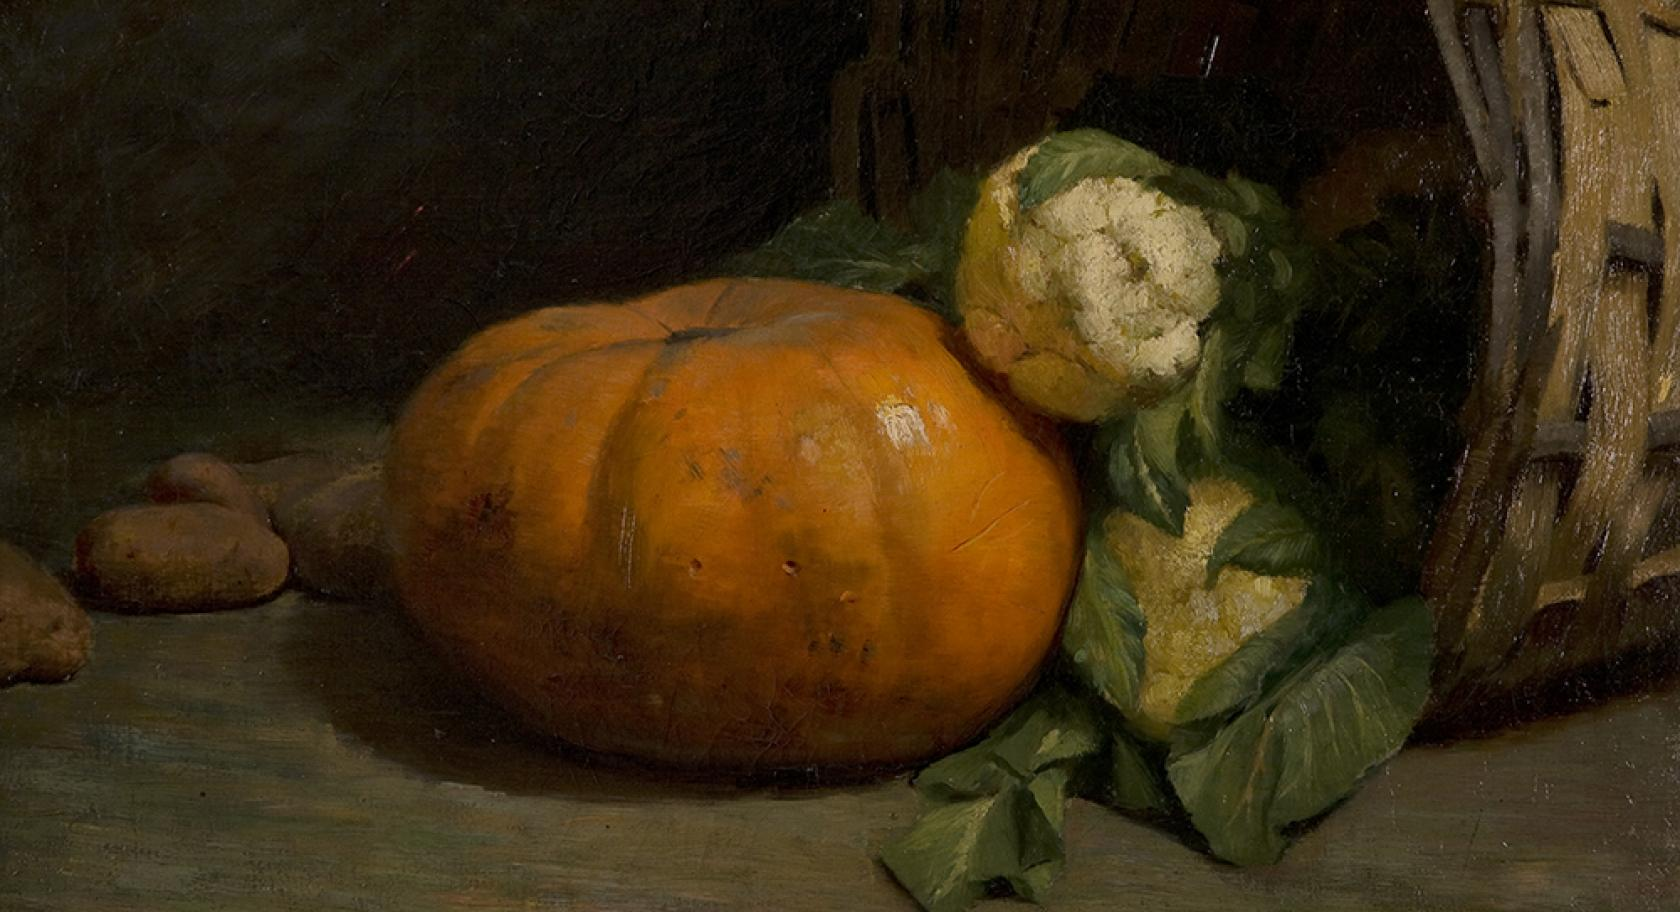 Harriett Richards Harwood, American, The Pumpkin and the Cauliflower (Still Life), oil on canvas, 1892